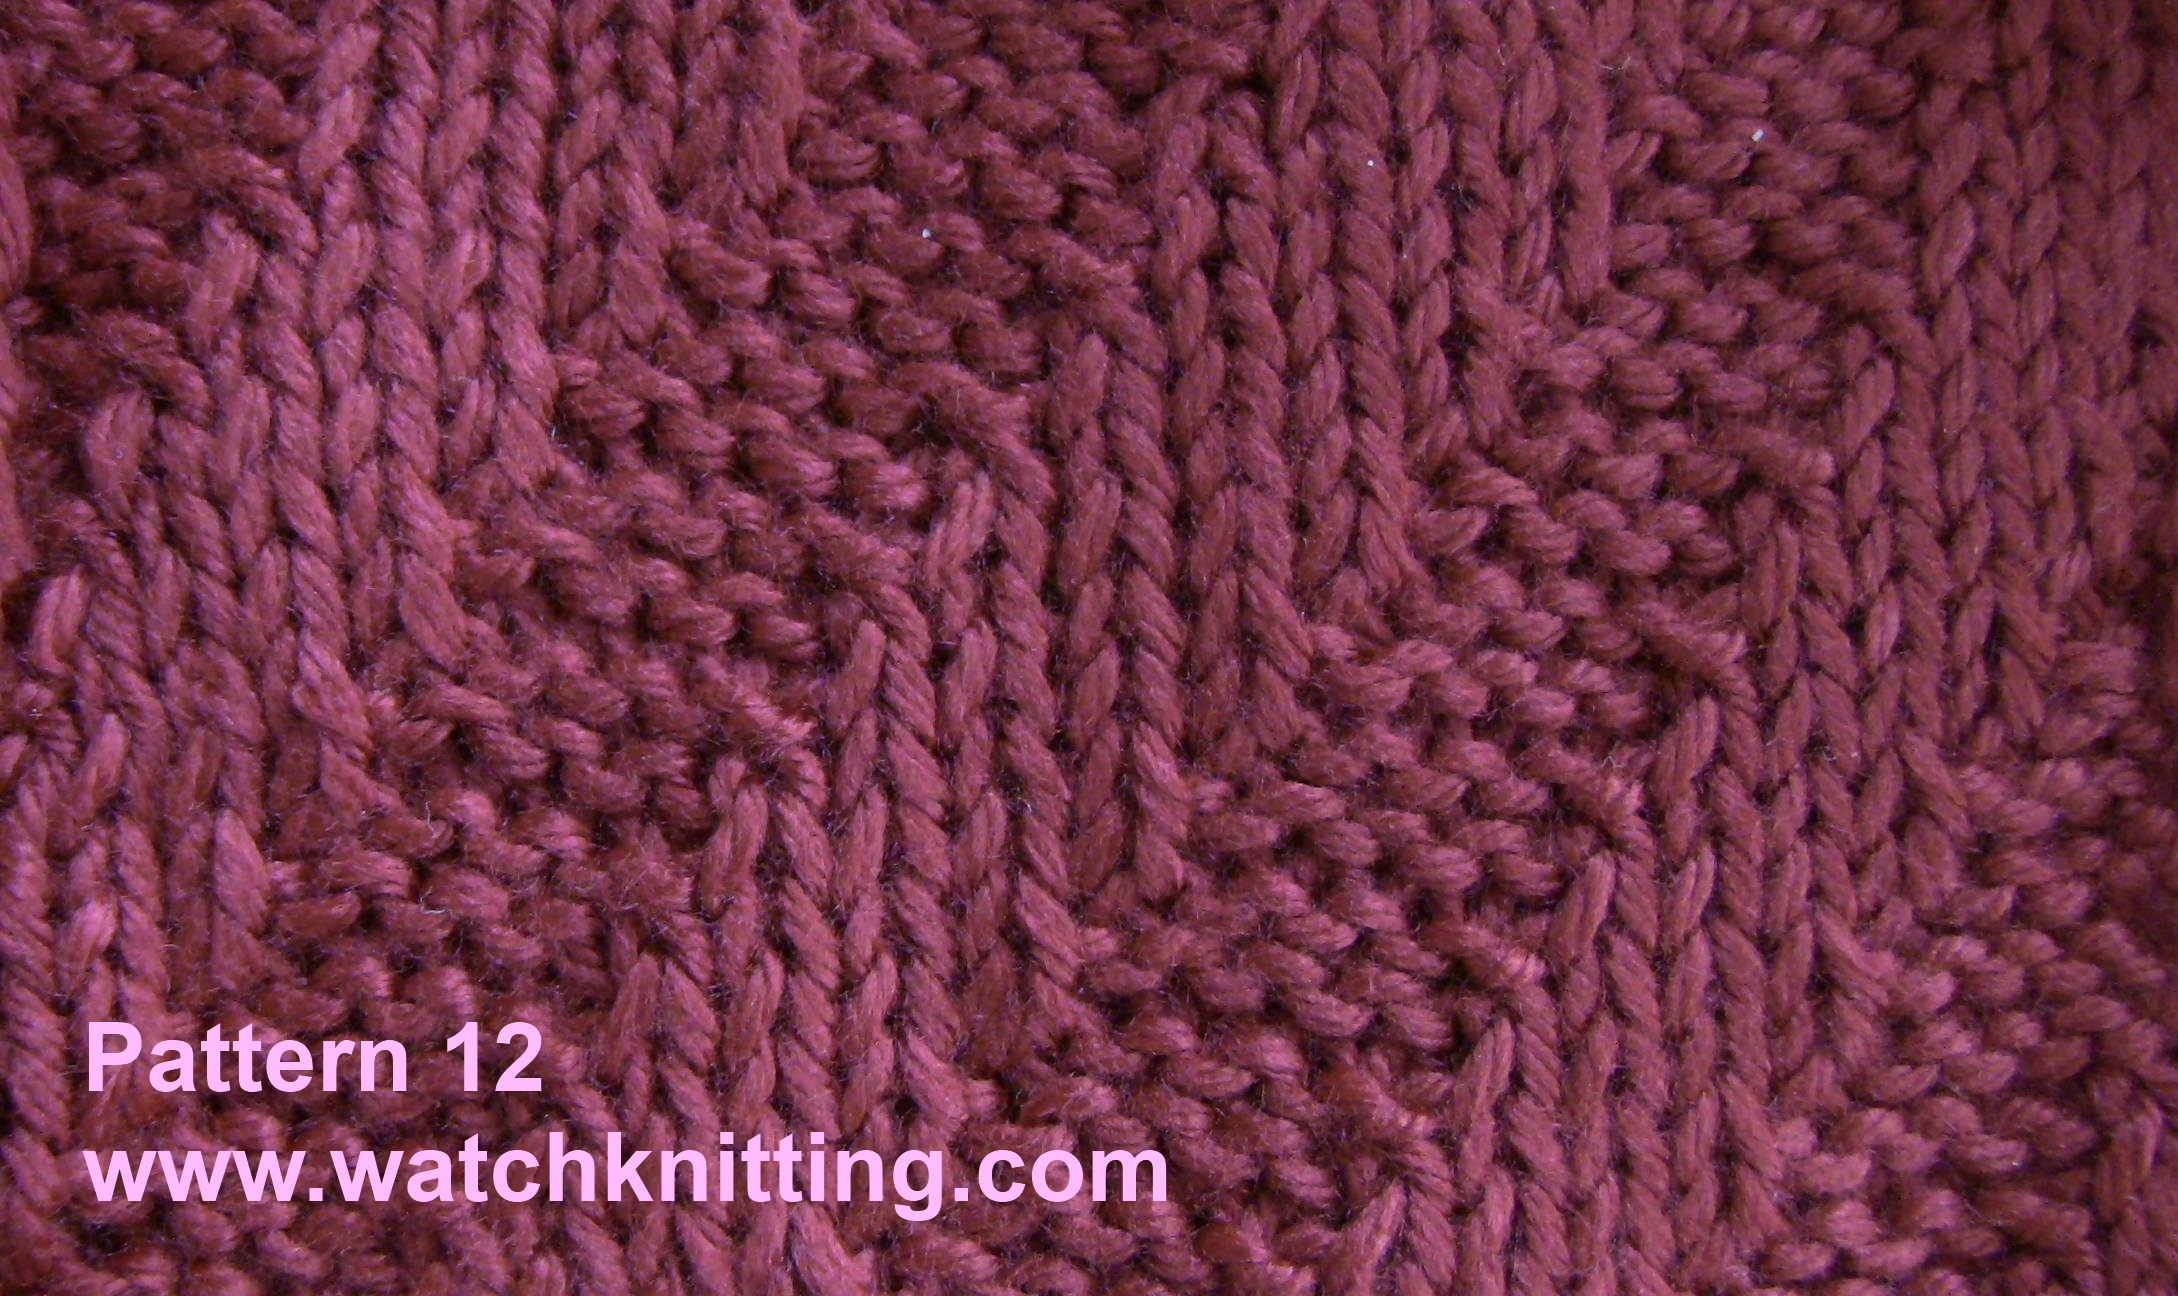 Pattern 12 Simple Knitting Patterns www.watchknitting.com